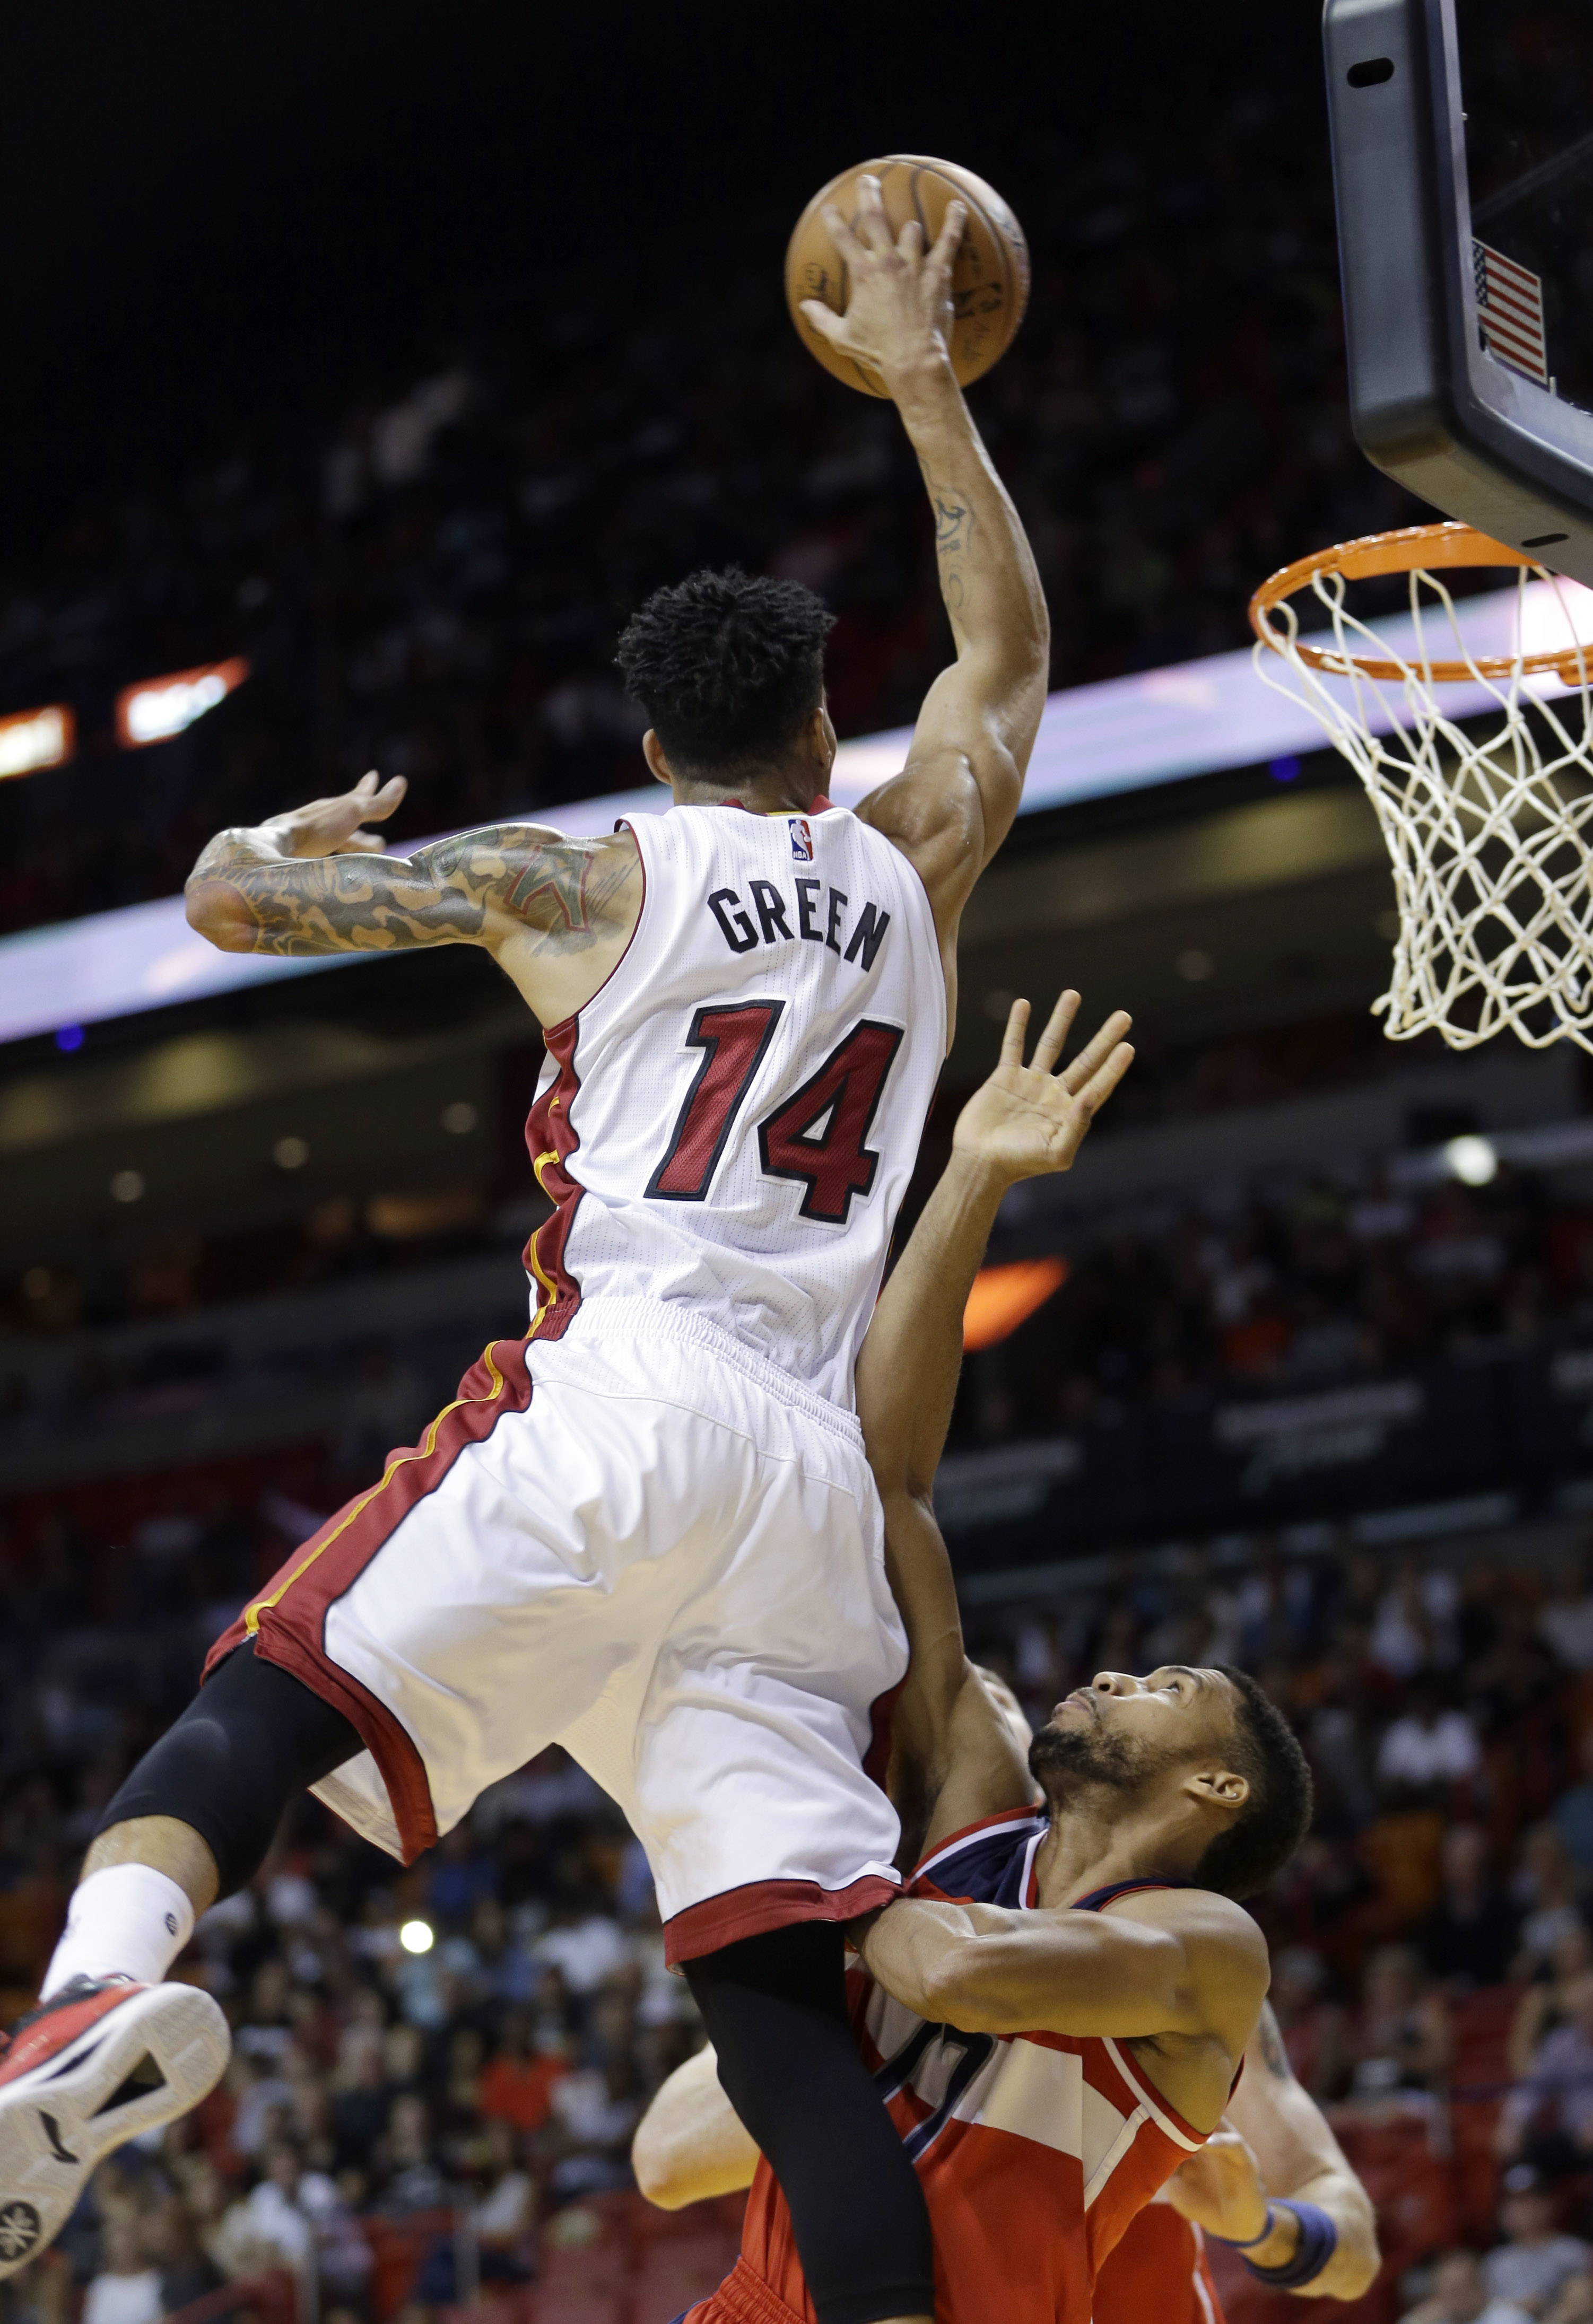 Miami Heat guard Gerald Green (14) is fouled as he goes to the basket by Washington Wizards guard Garrett Temple (17)  in the first half of an NBA preseason basketball game, Wednesday, Oct. 21, 2015, in Miami. (AP Photo/Alan Diaz)